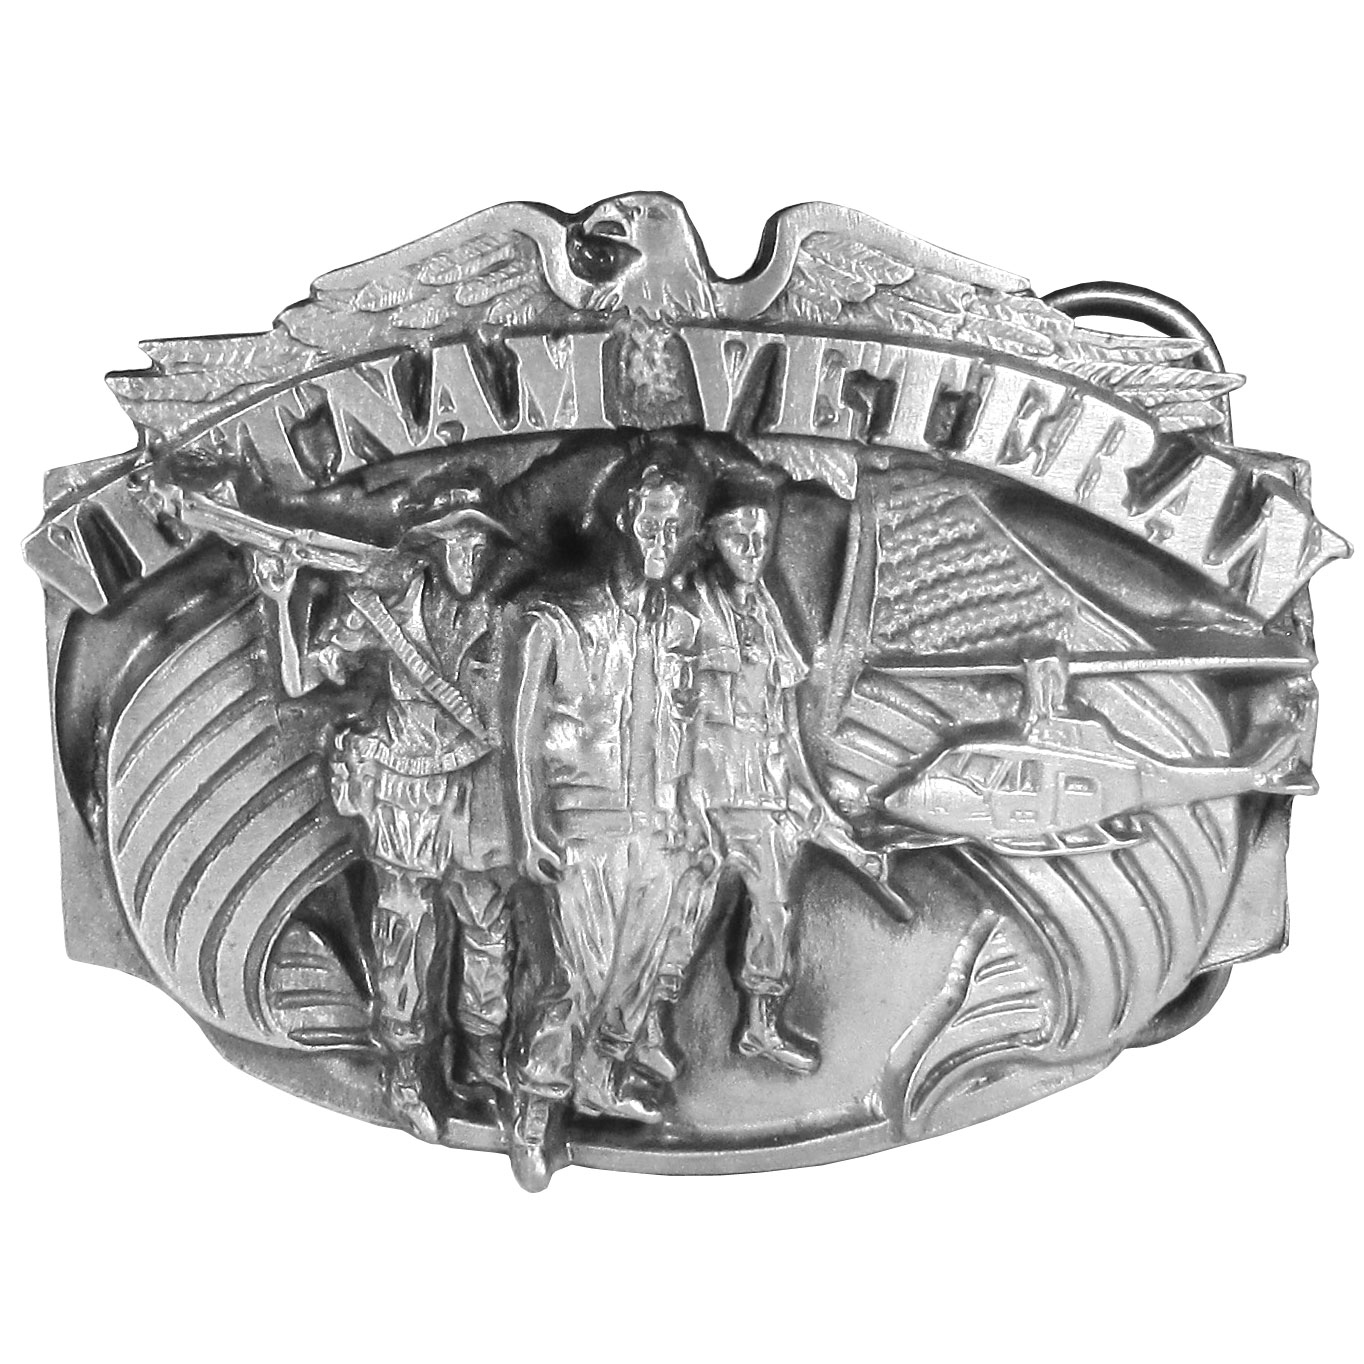 "Vietnam Veteran Antiqued Belt Buckle - ""This buckle has the words """"Vietnam Veteran"""" written across the top with three soldiers, a helicopter, an eagle and two American flags. On the back are the words """"The Forgotten Warrior"""". This exquisitely carved buckle is made of fully cast metal with a standard bale that fits up to 2"""" belts. Siskiyou's unique buckle designs often become collectors items and are unequaled with the best craftsmanship."""